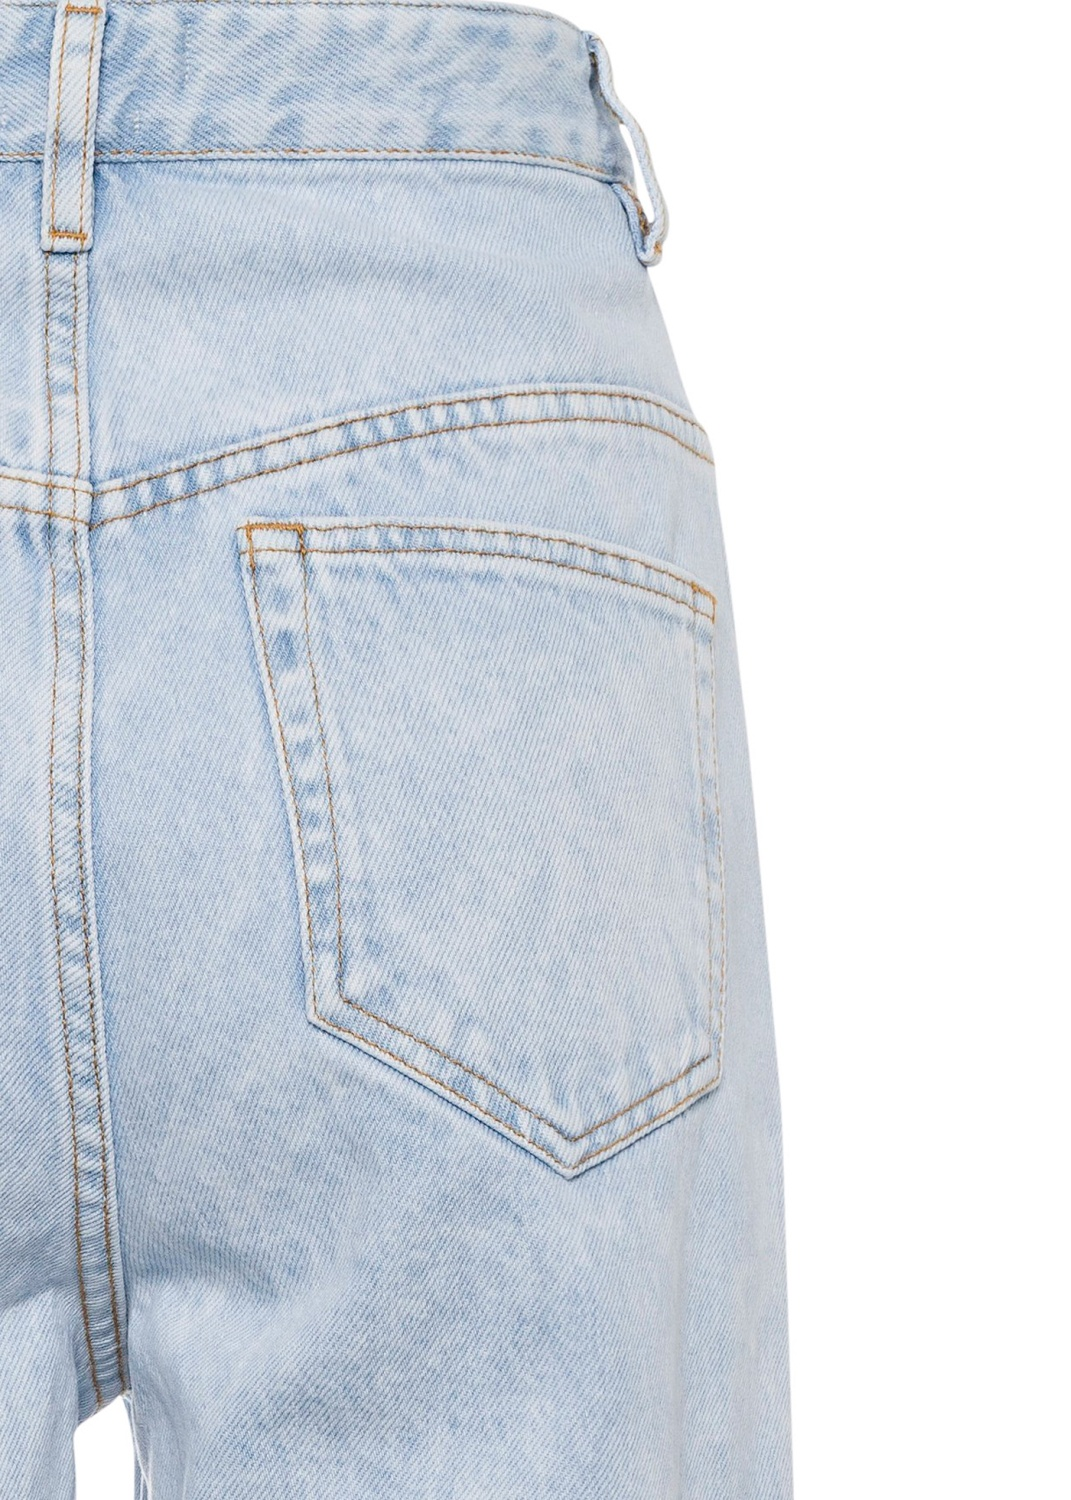 CORSYSR Trouser image number 3